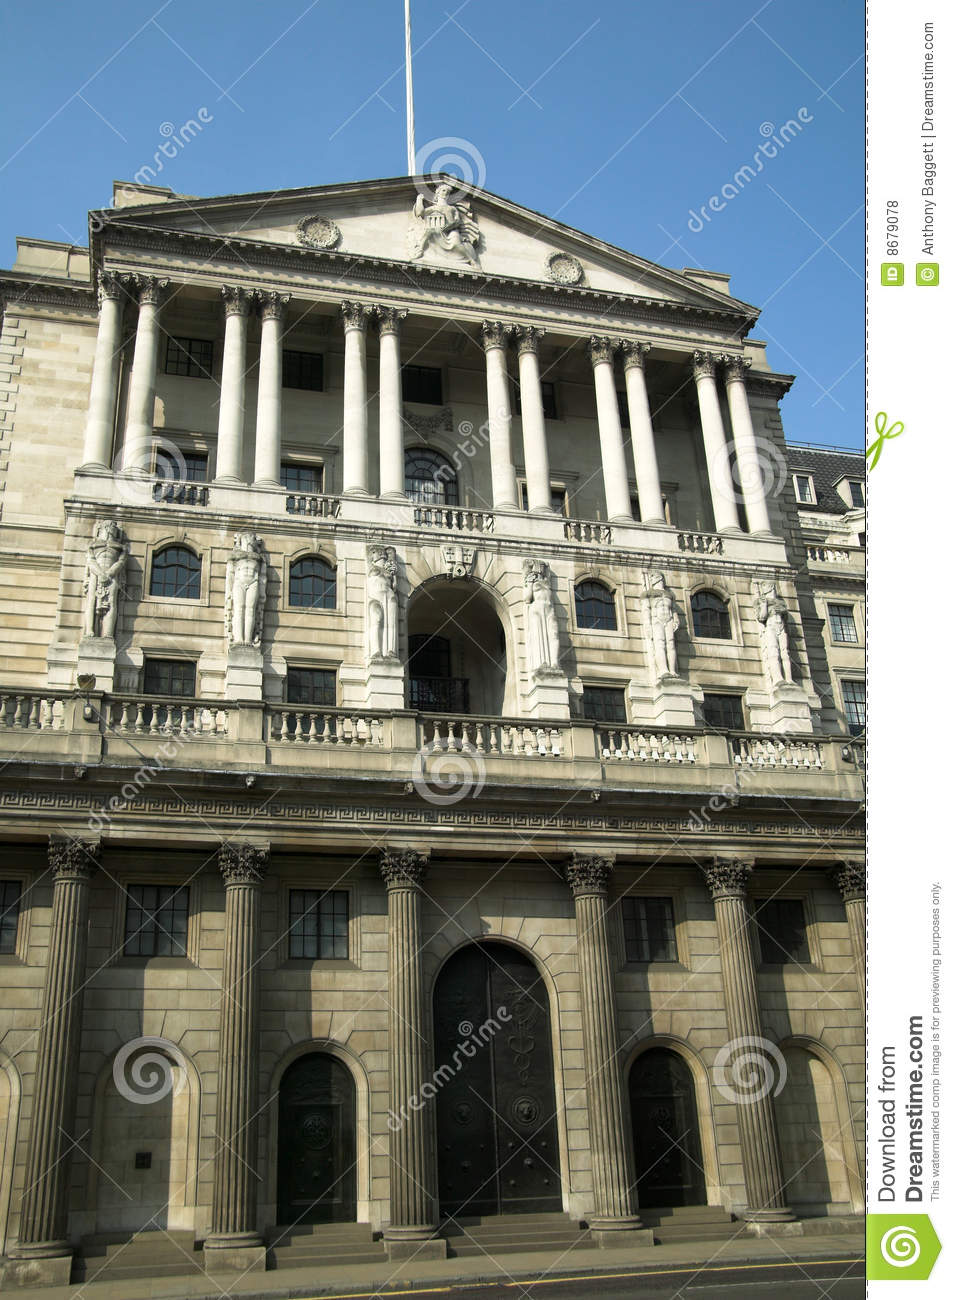 bank of england known as the Architect best-known for his design of the bank of england, a museum formerly his home and the tomb he built in memory of his wife which inspired the design of the red telephone box.